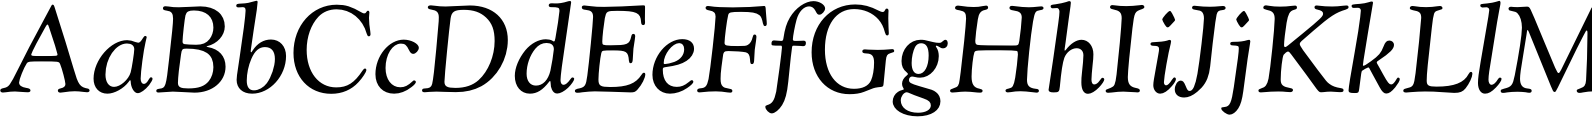 Goudy Catalogue Regular Italic